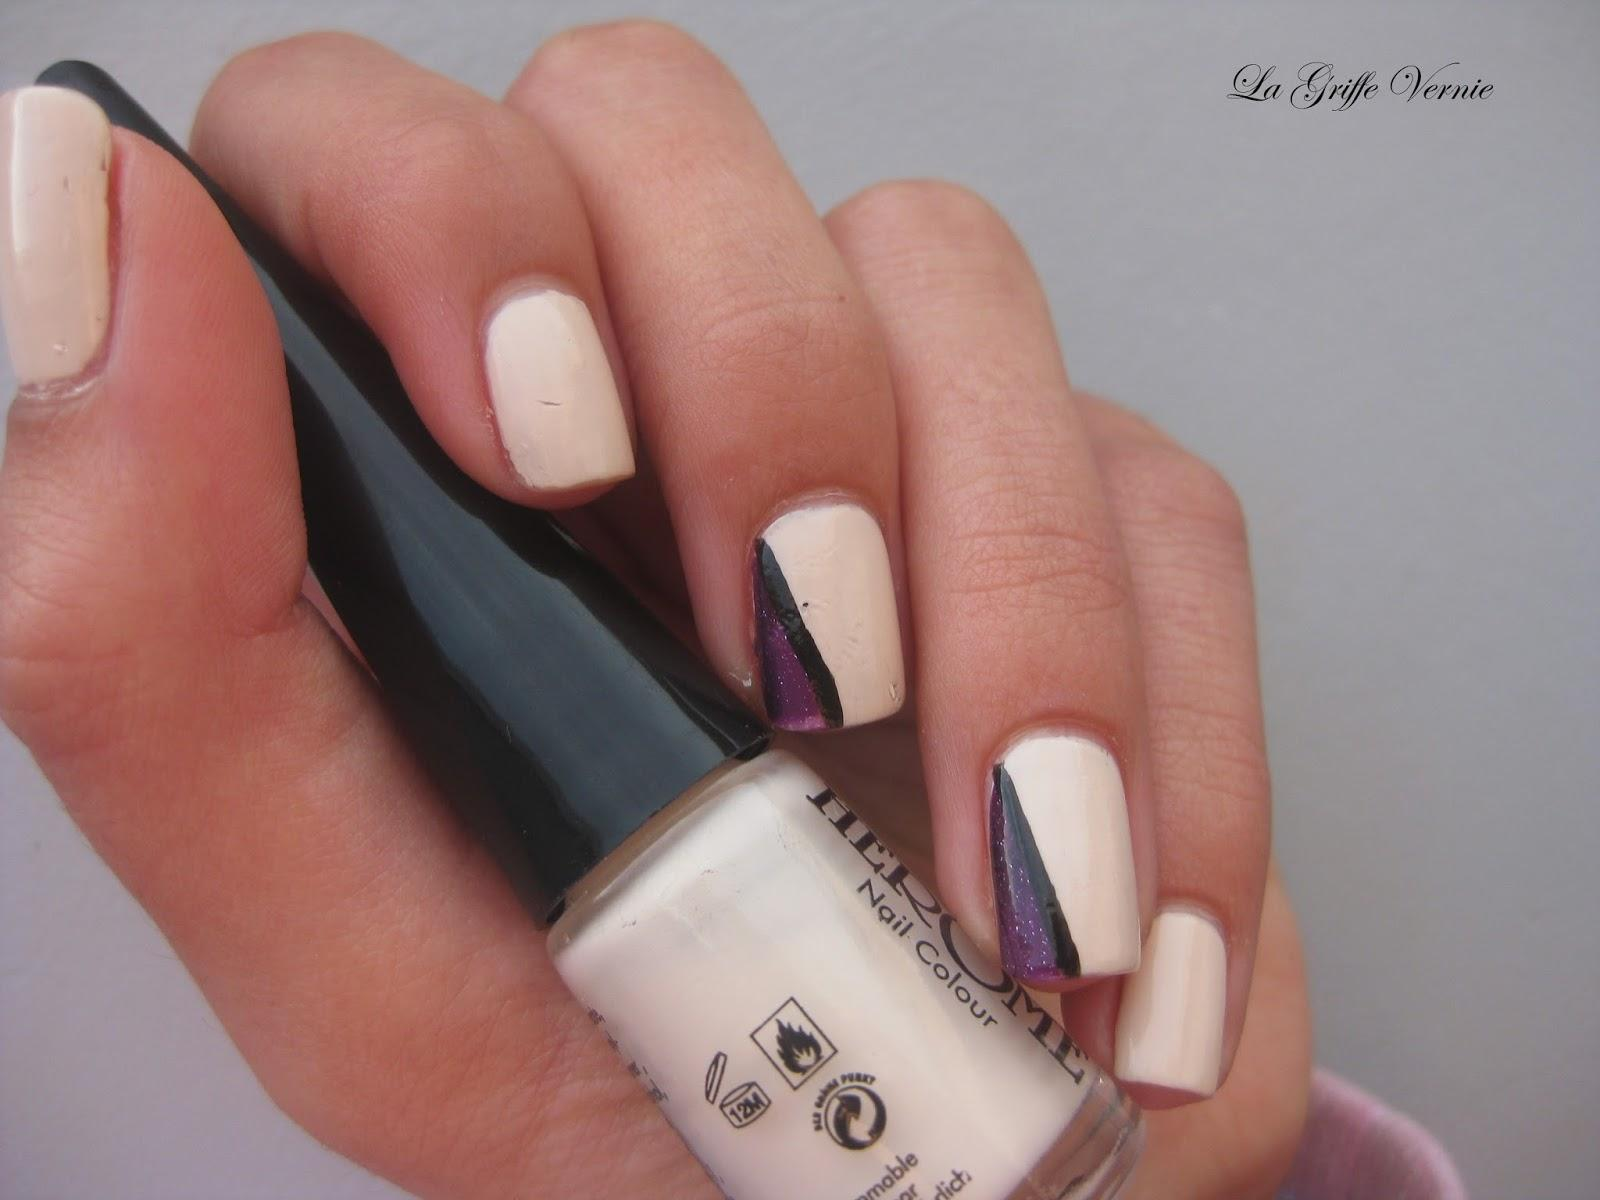 Vernis Hérôme + accent nail triangles